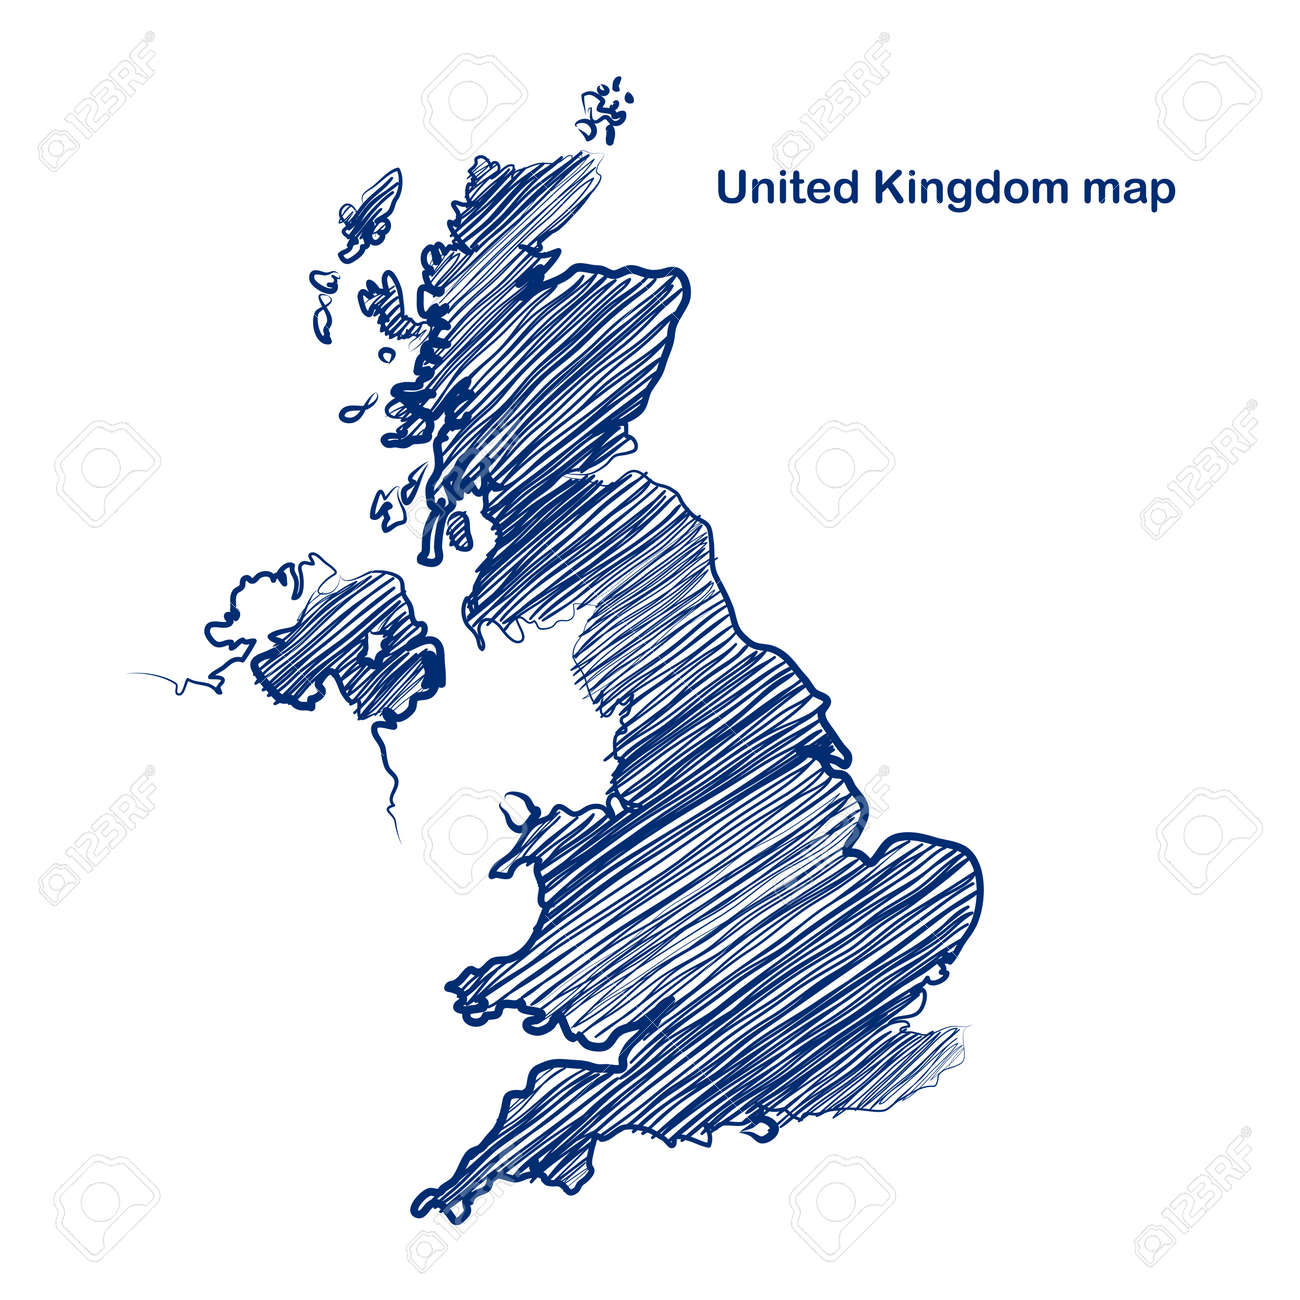 United Kingdom map hand drawn background Stock Vector - 28029742